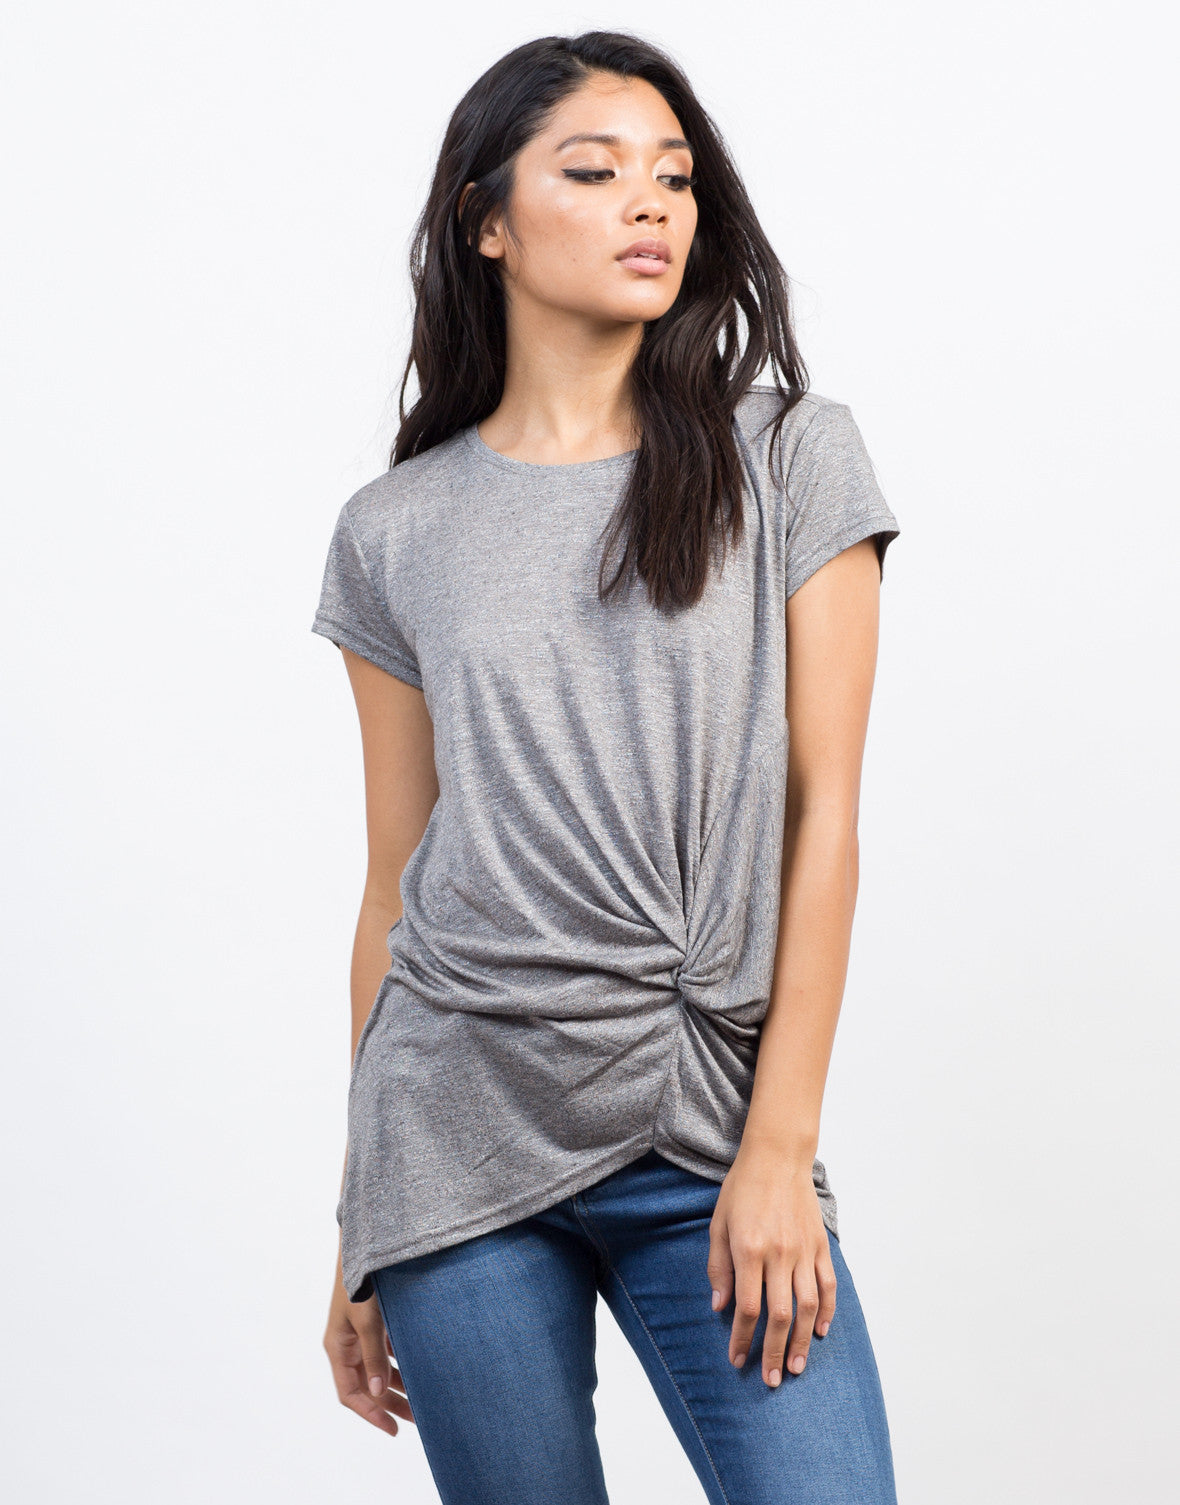 Front View of Knotted Tunic Tee